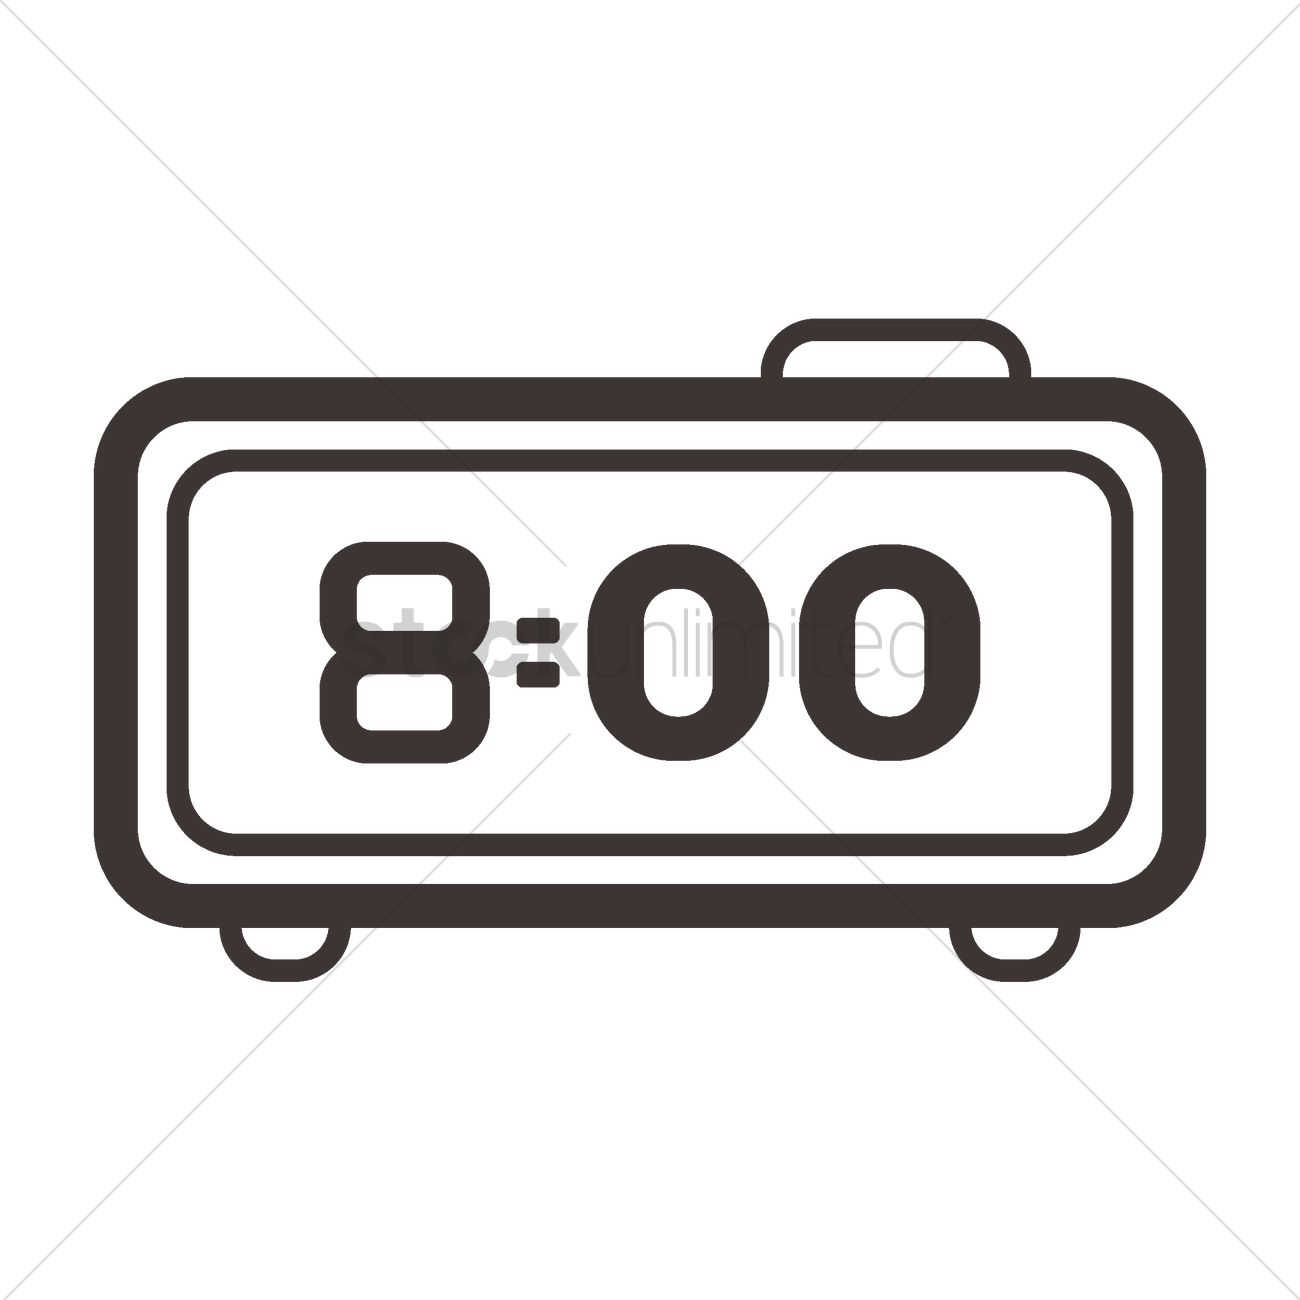 Digital alarm clock Vector Image.